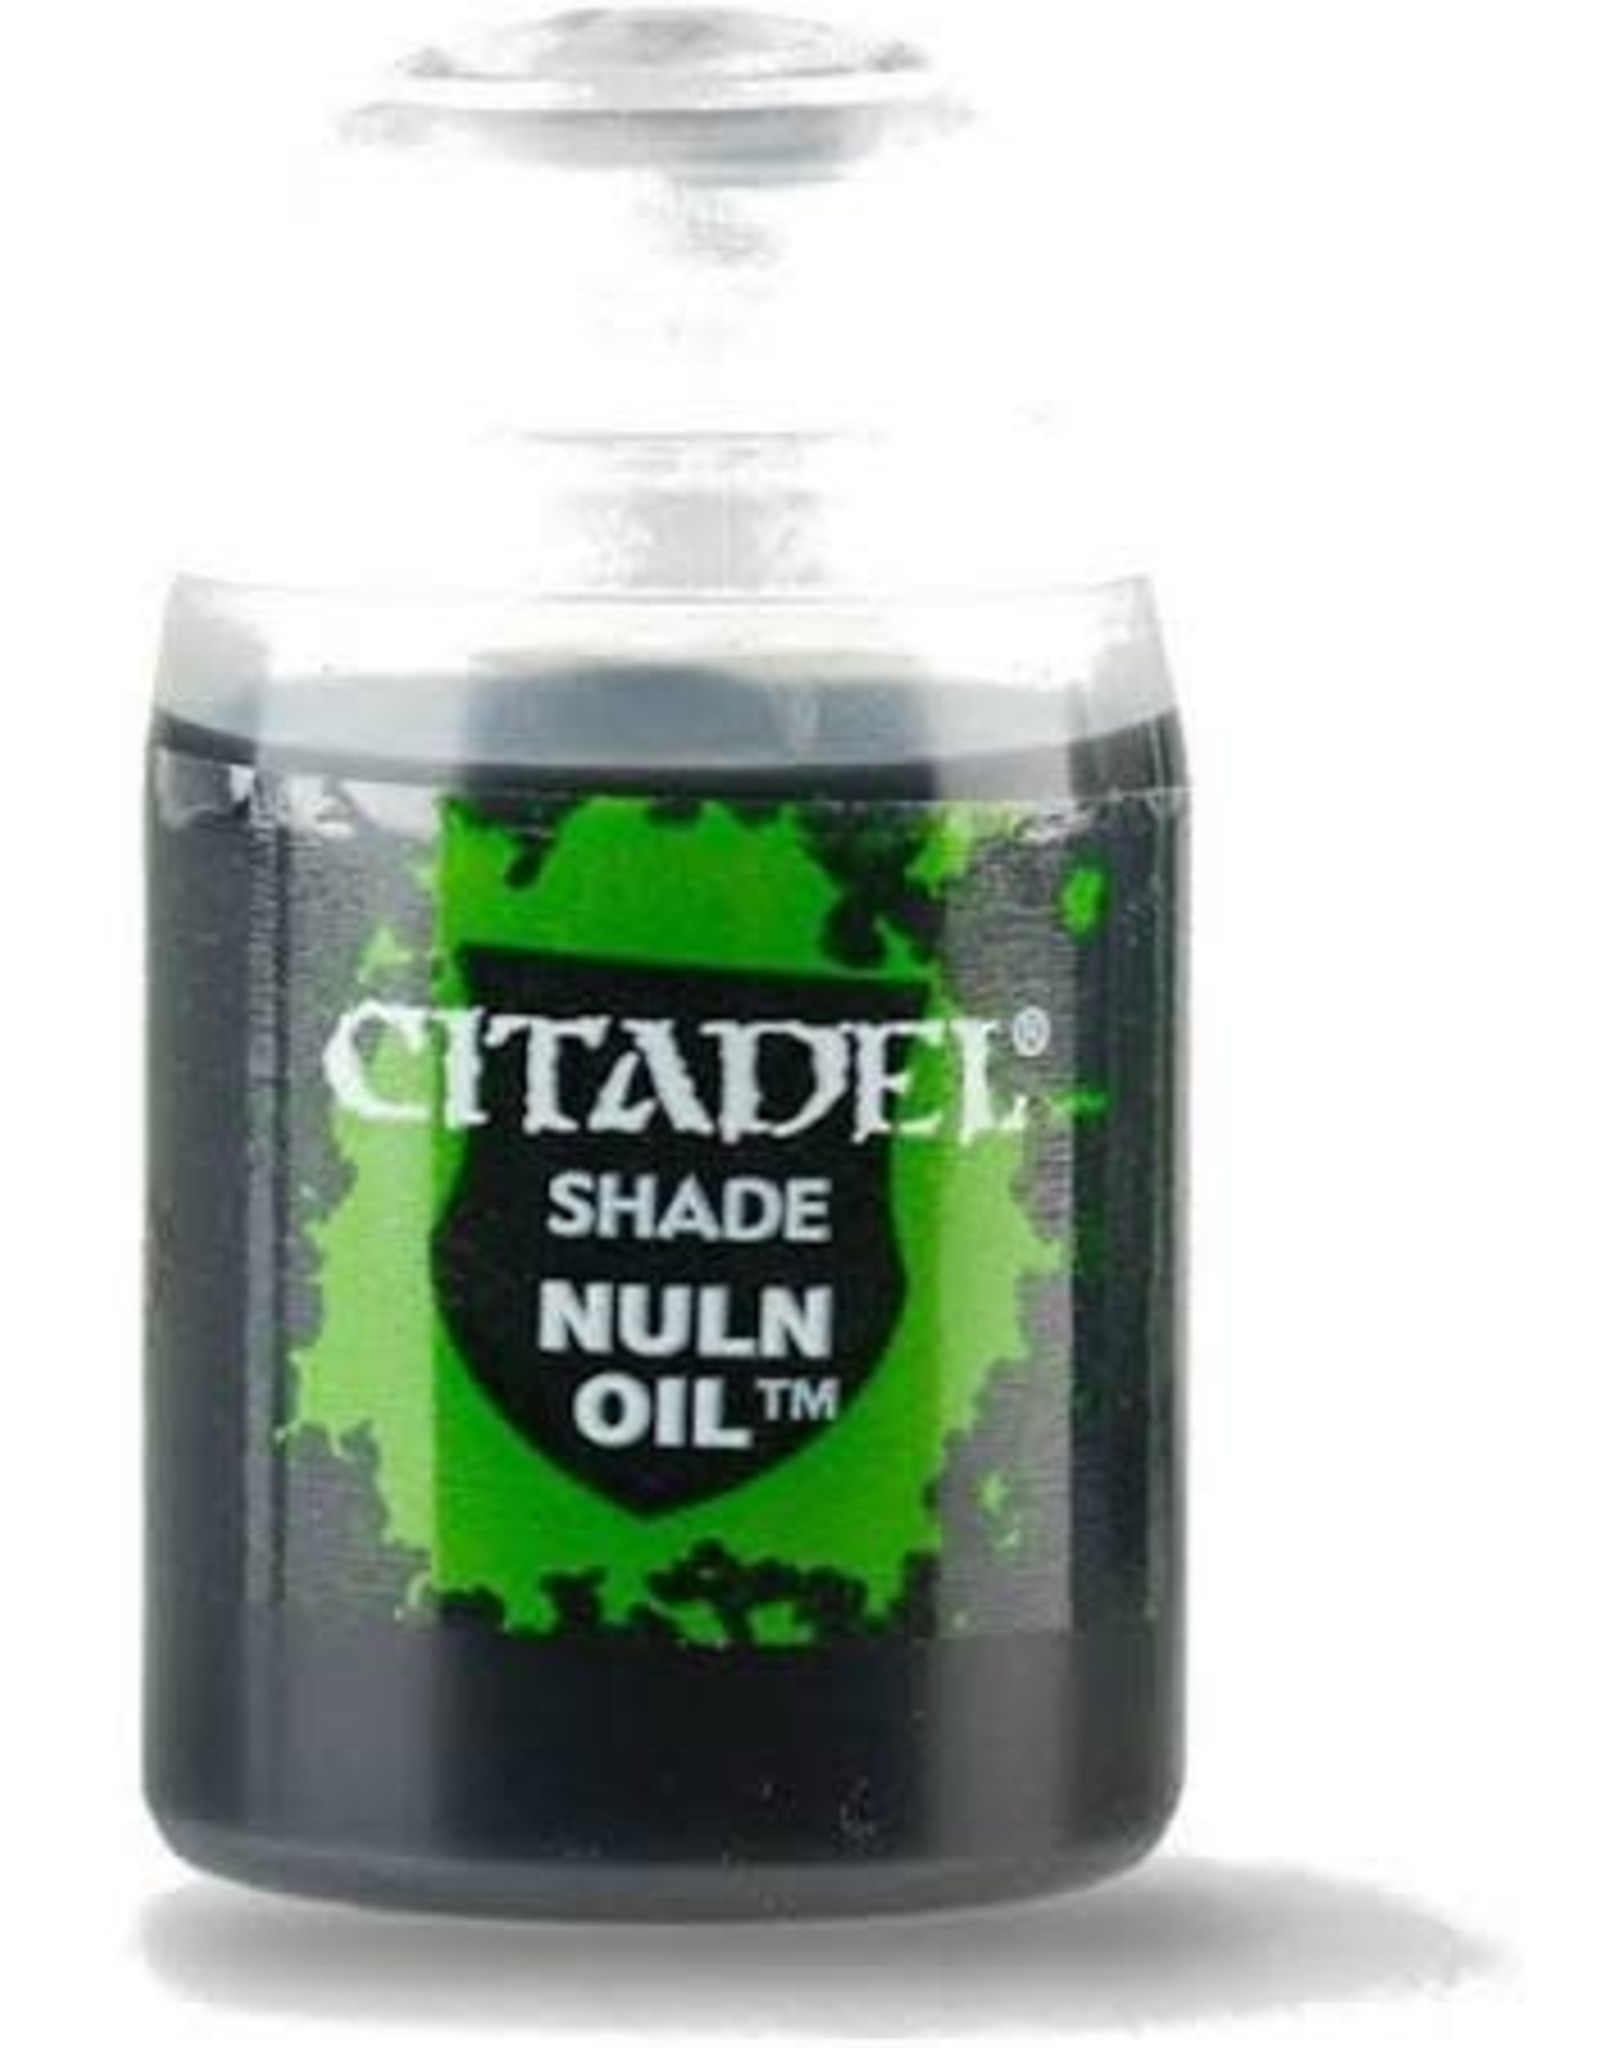 Games Workshop Citadel Paint: Shade - Nuln Oil (24ml)